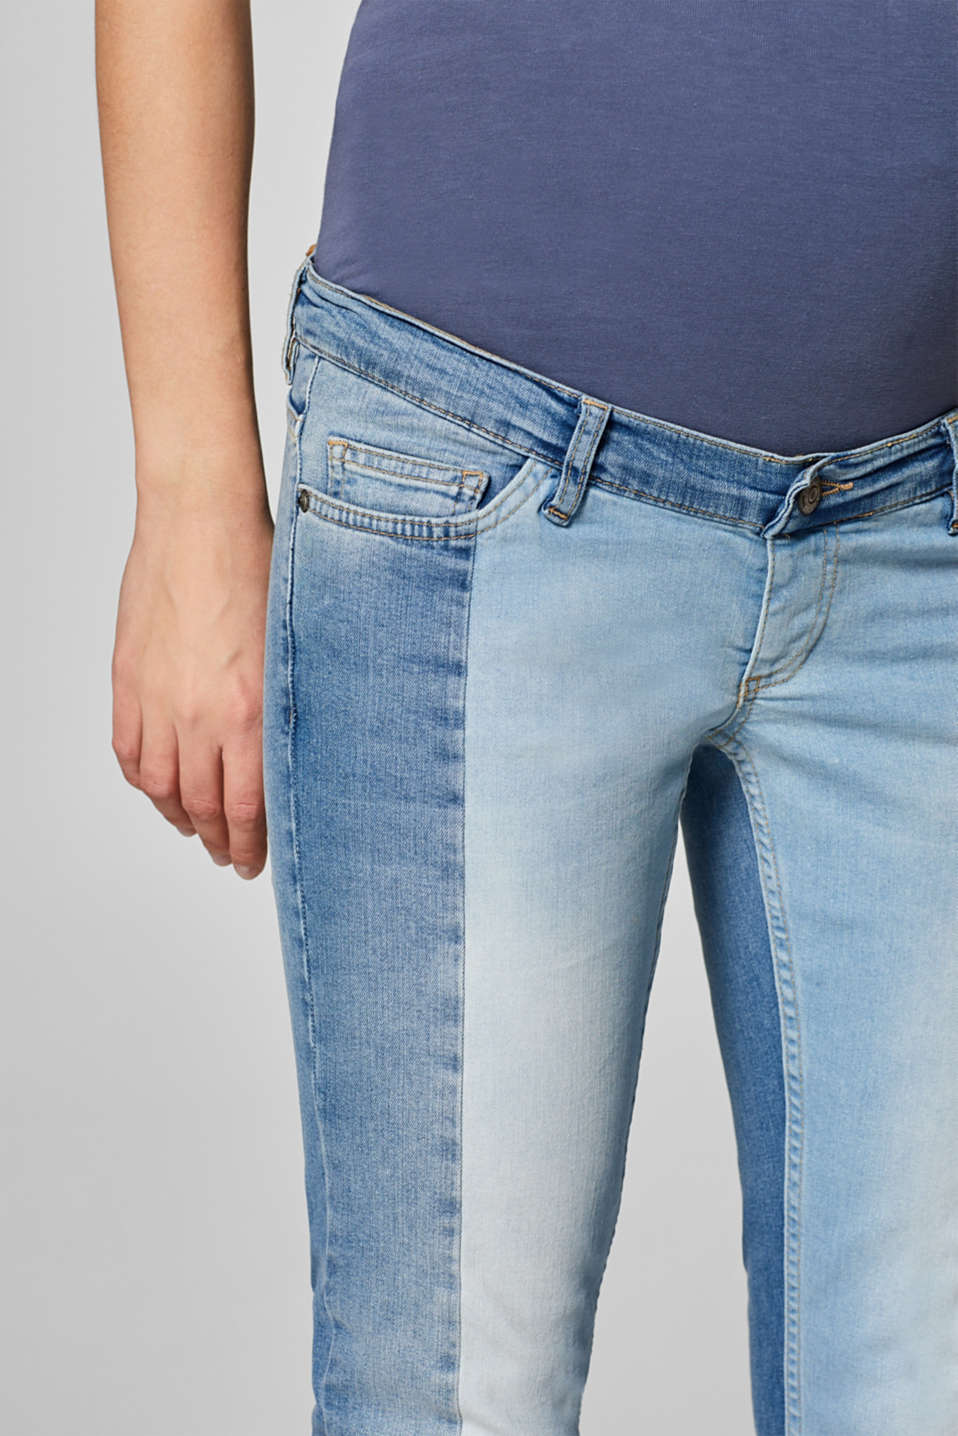 Patchwork stretch jeans with an over-bump waistband